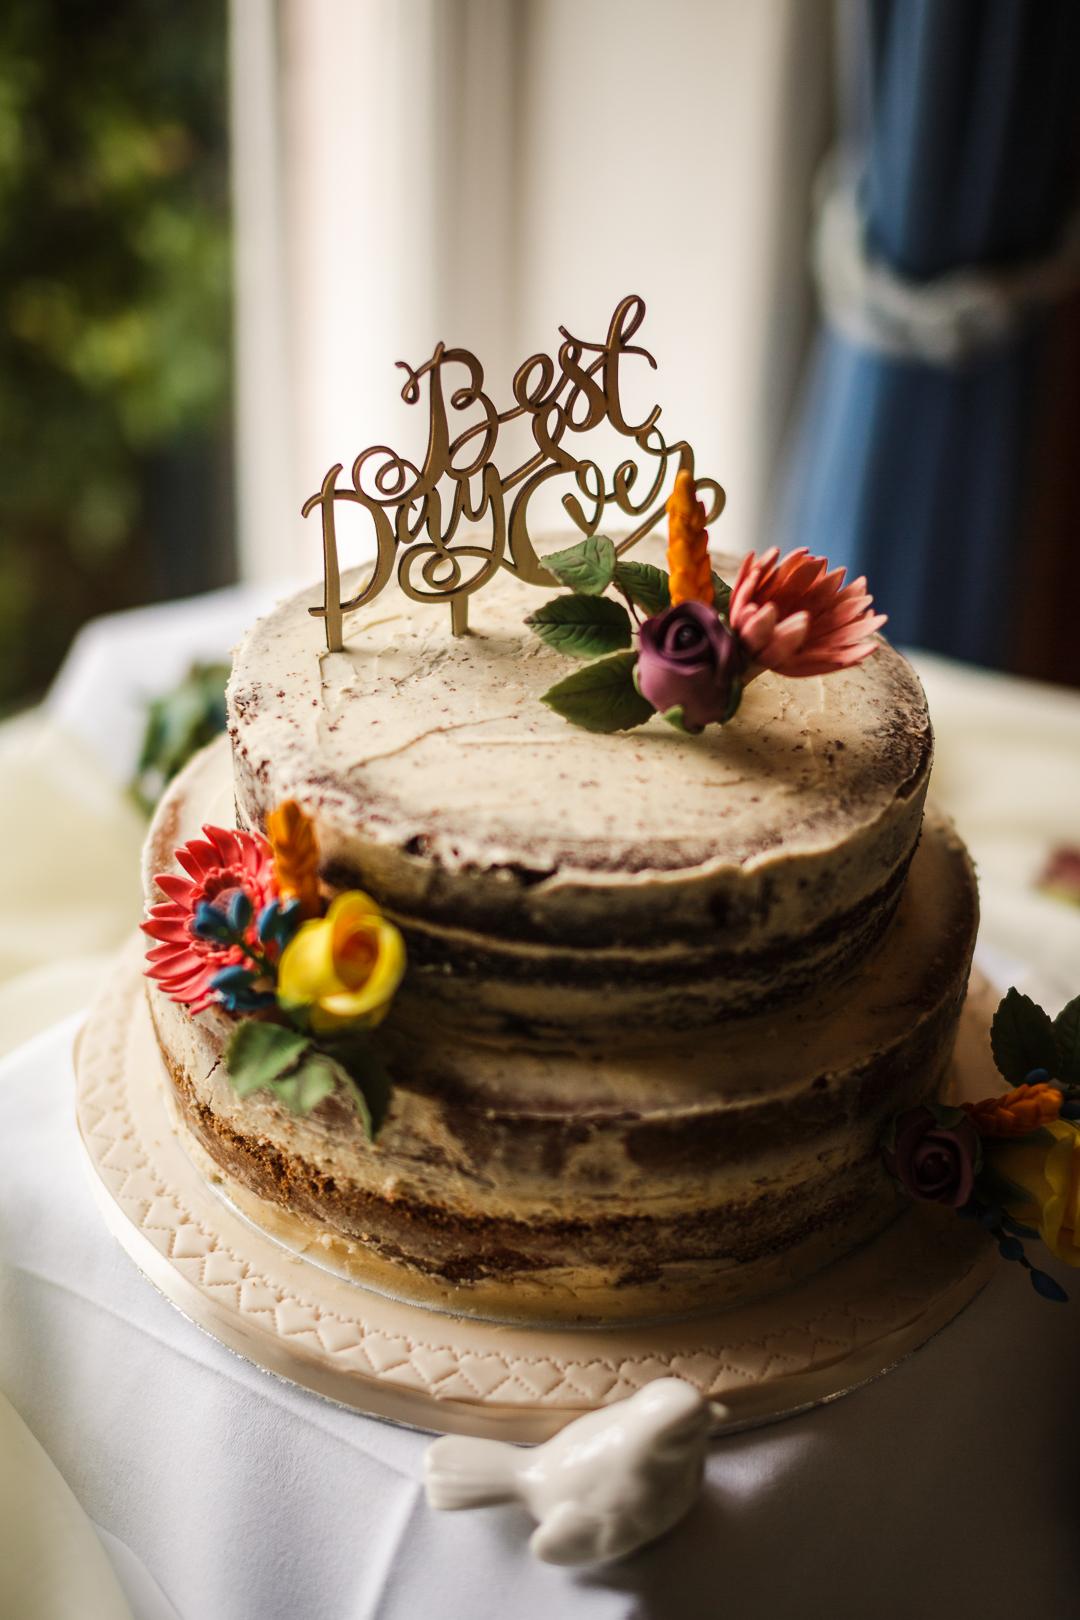 The wedding cake was a semi naked one, topped with a calligraphy topped and blooms